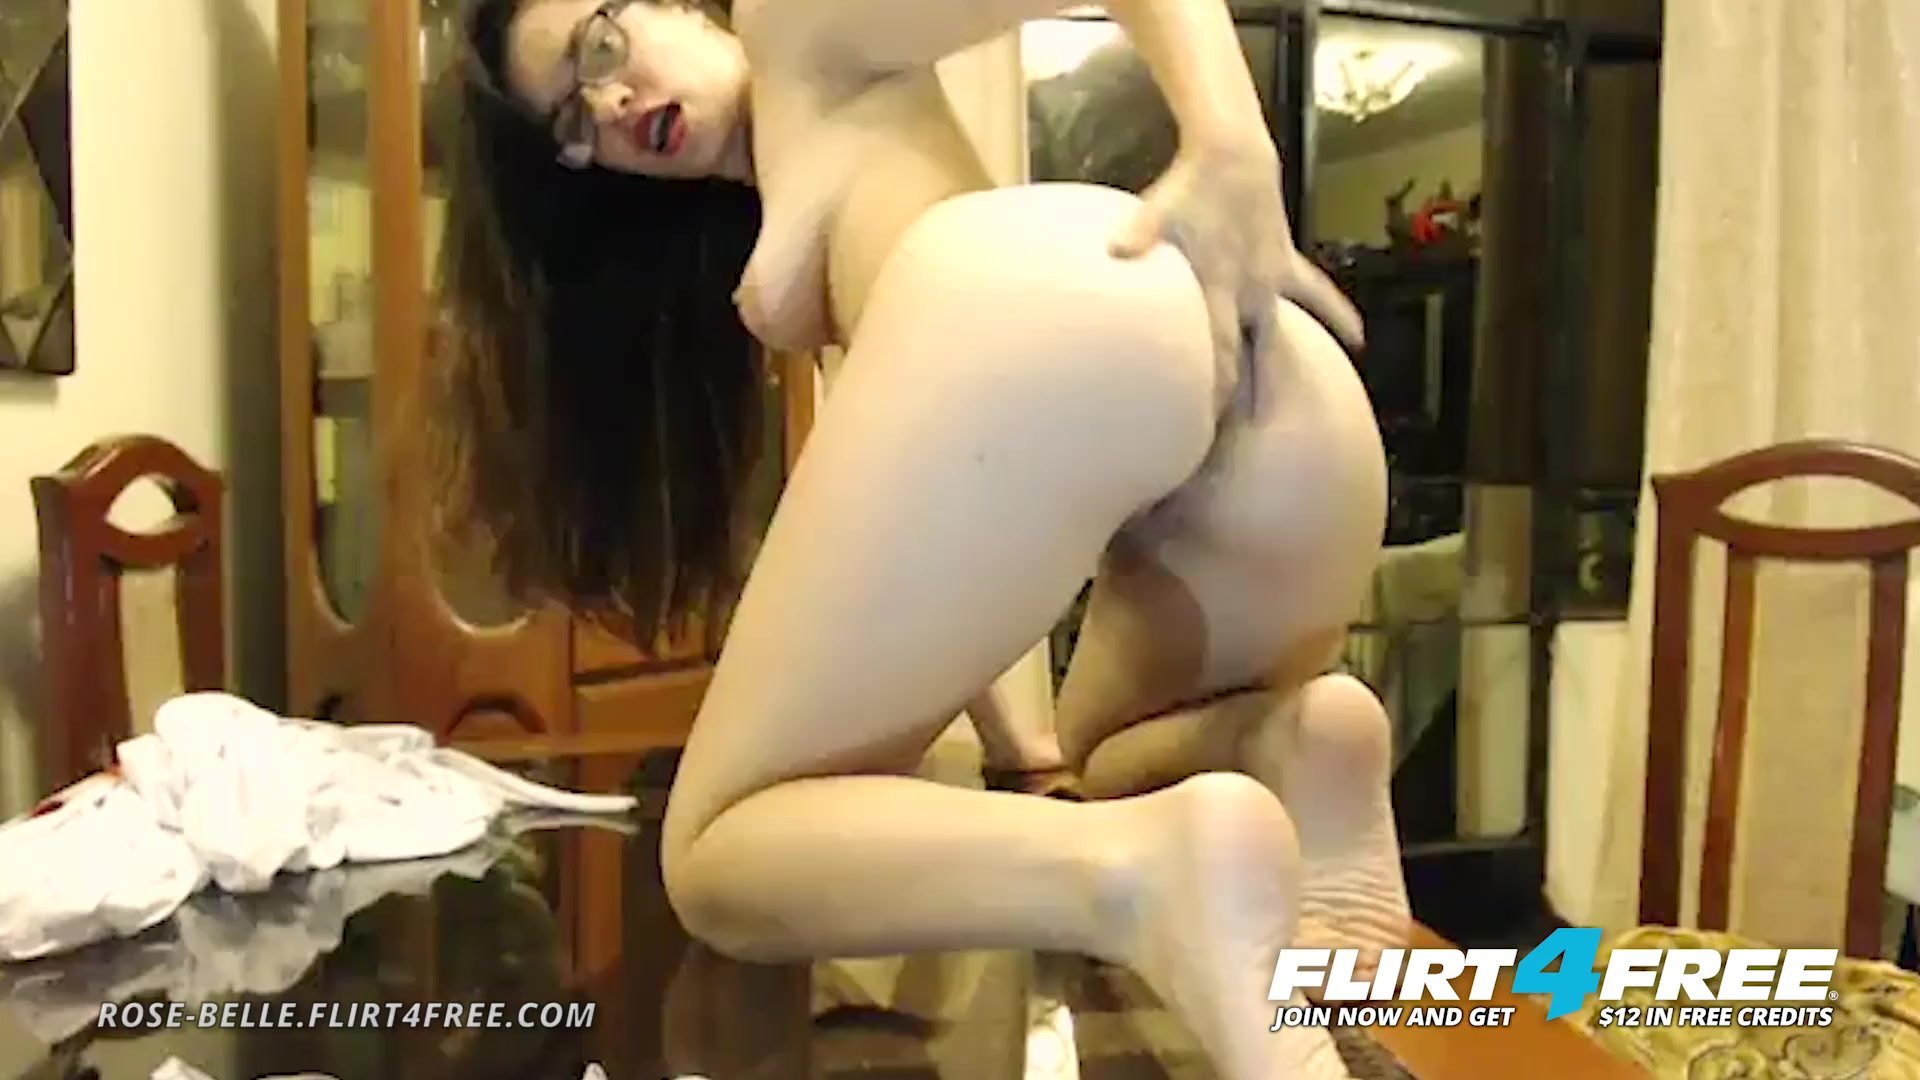 Rose Belle on Flirt4Free - Latina with Small Perky Tits Fingers Her Ass